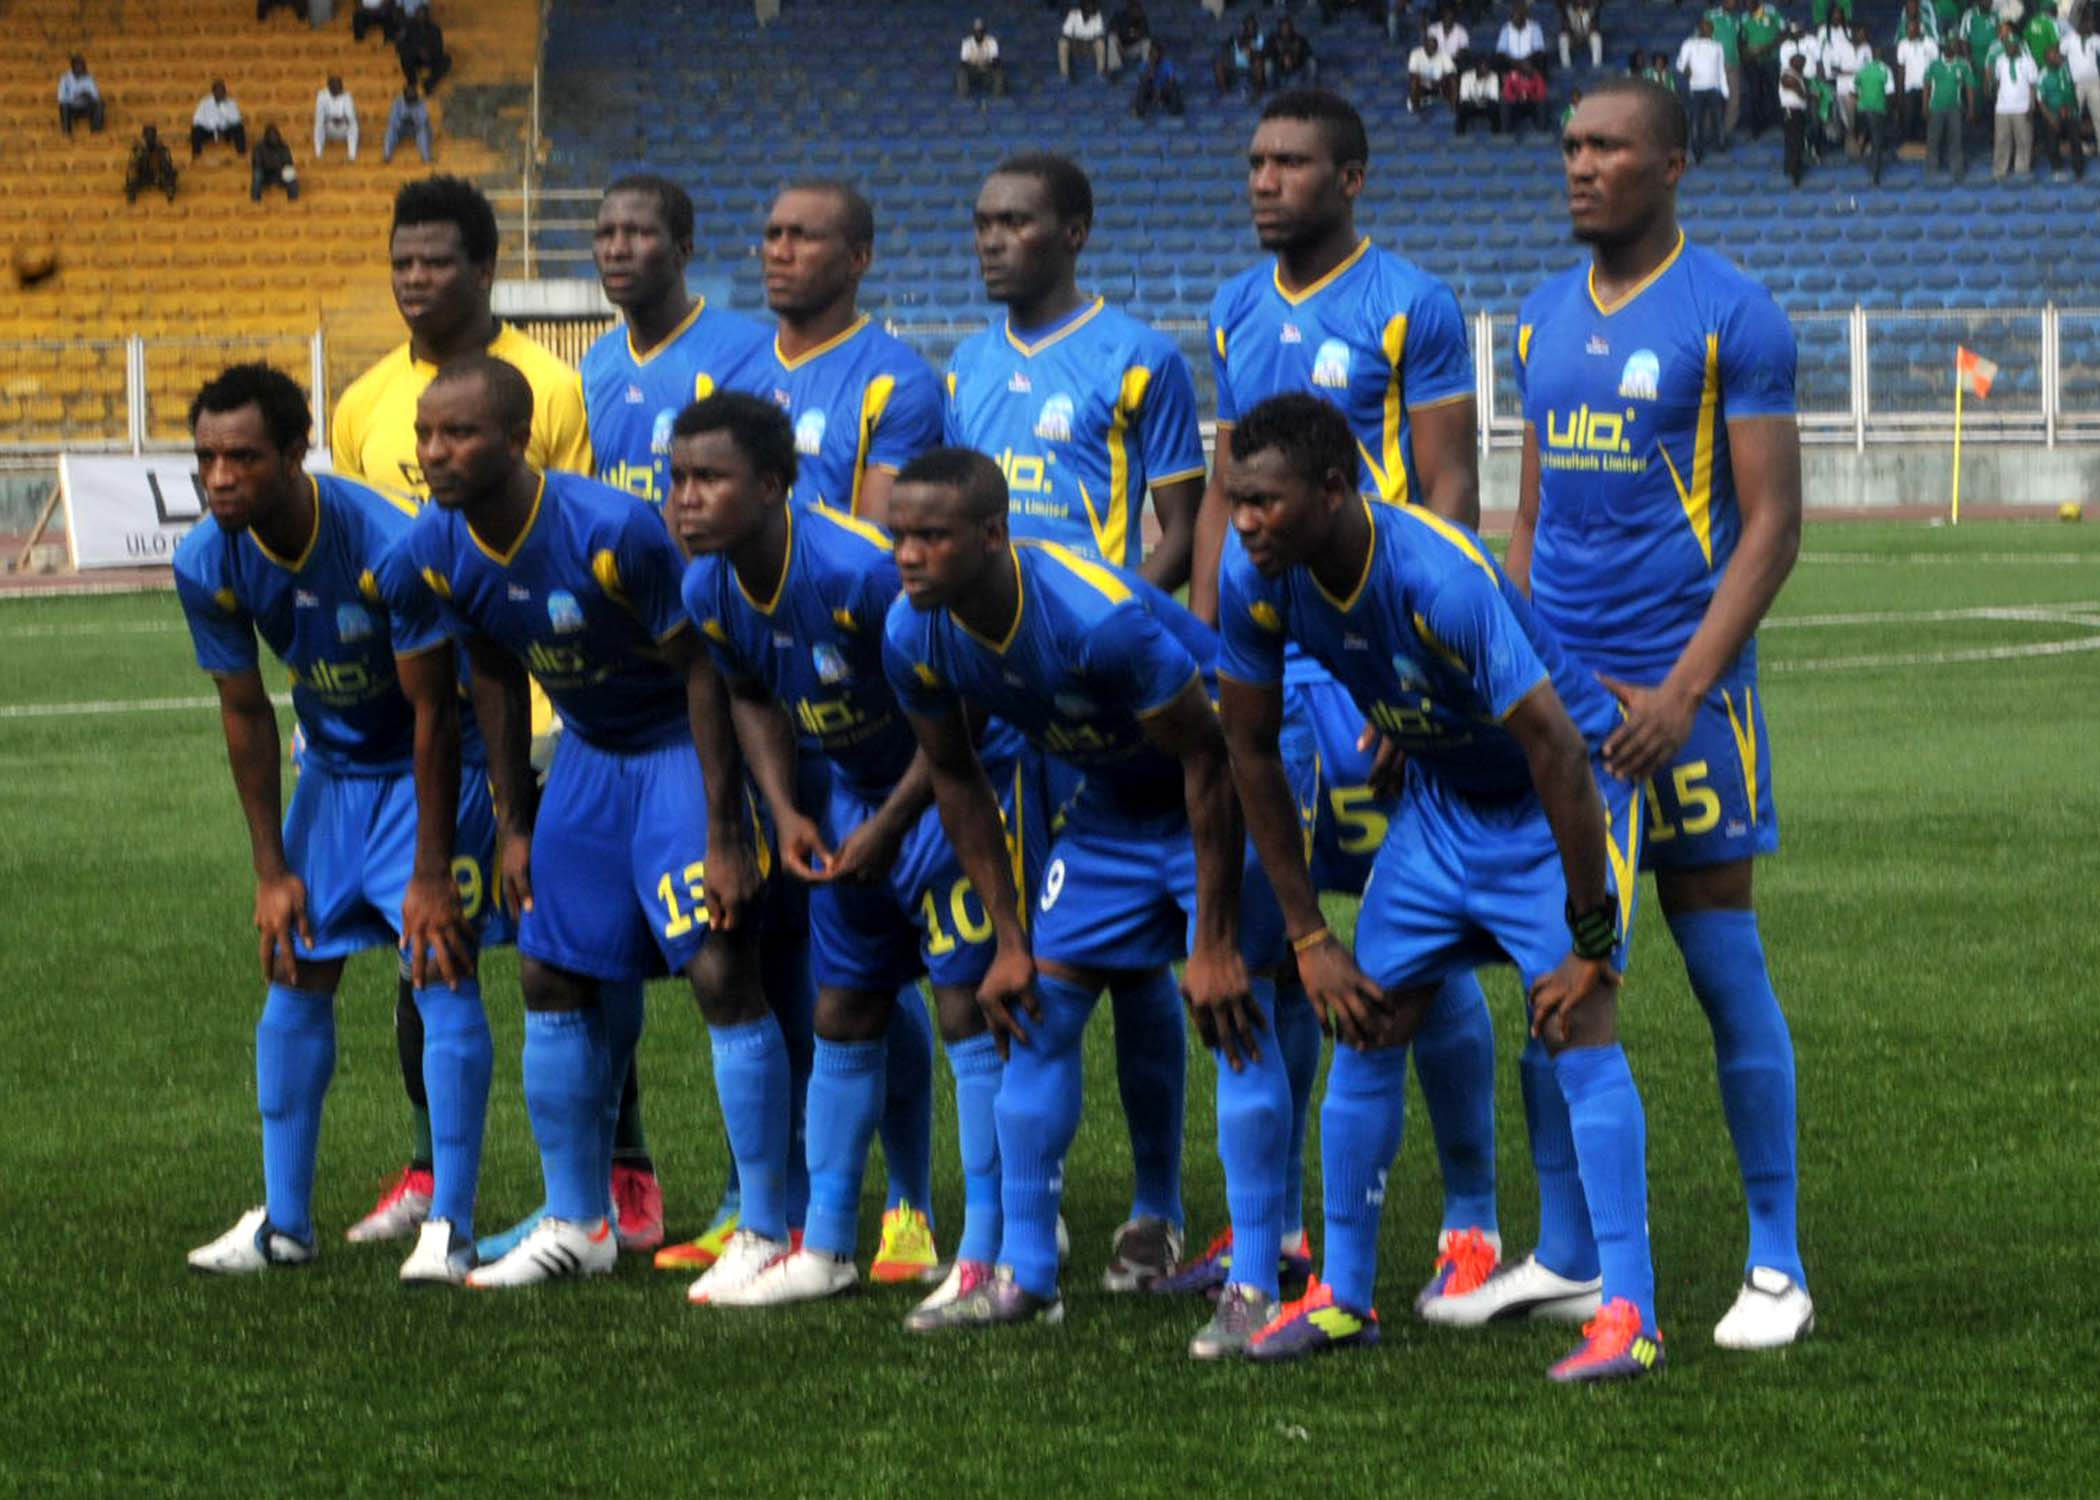 Warri Wolves Edge Akwa United In Super 4 Opener